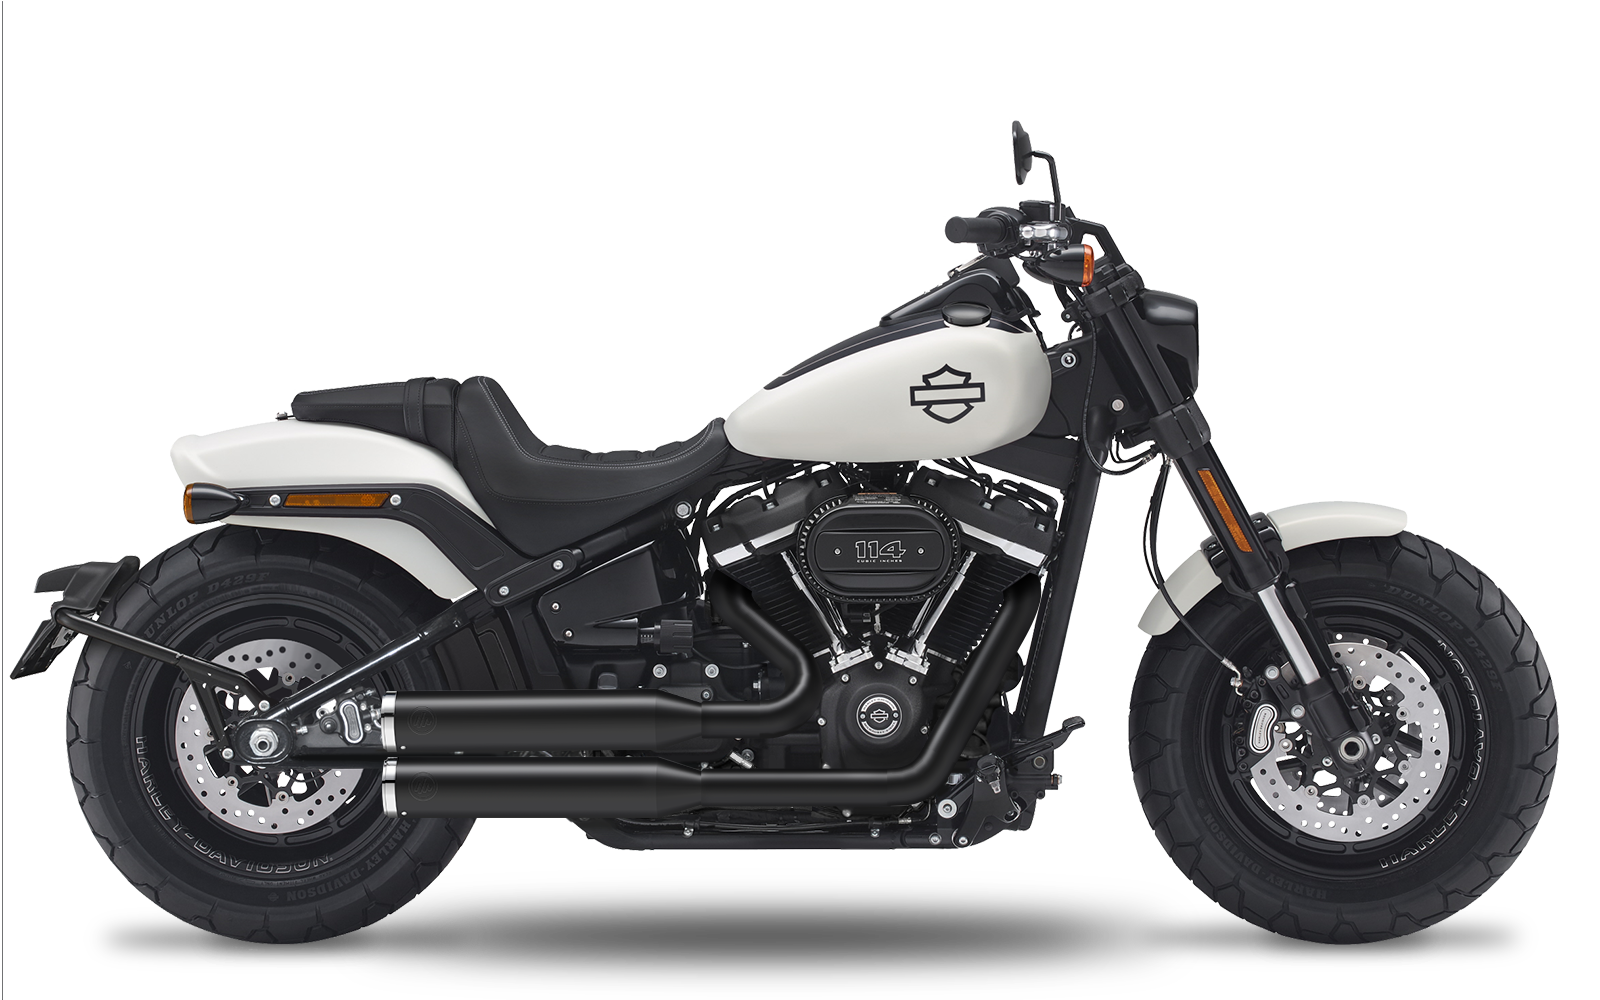 Softail - Fat Bob 114 / S - ME114 - 2021 - Complete systems